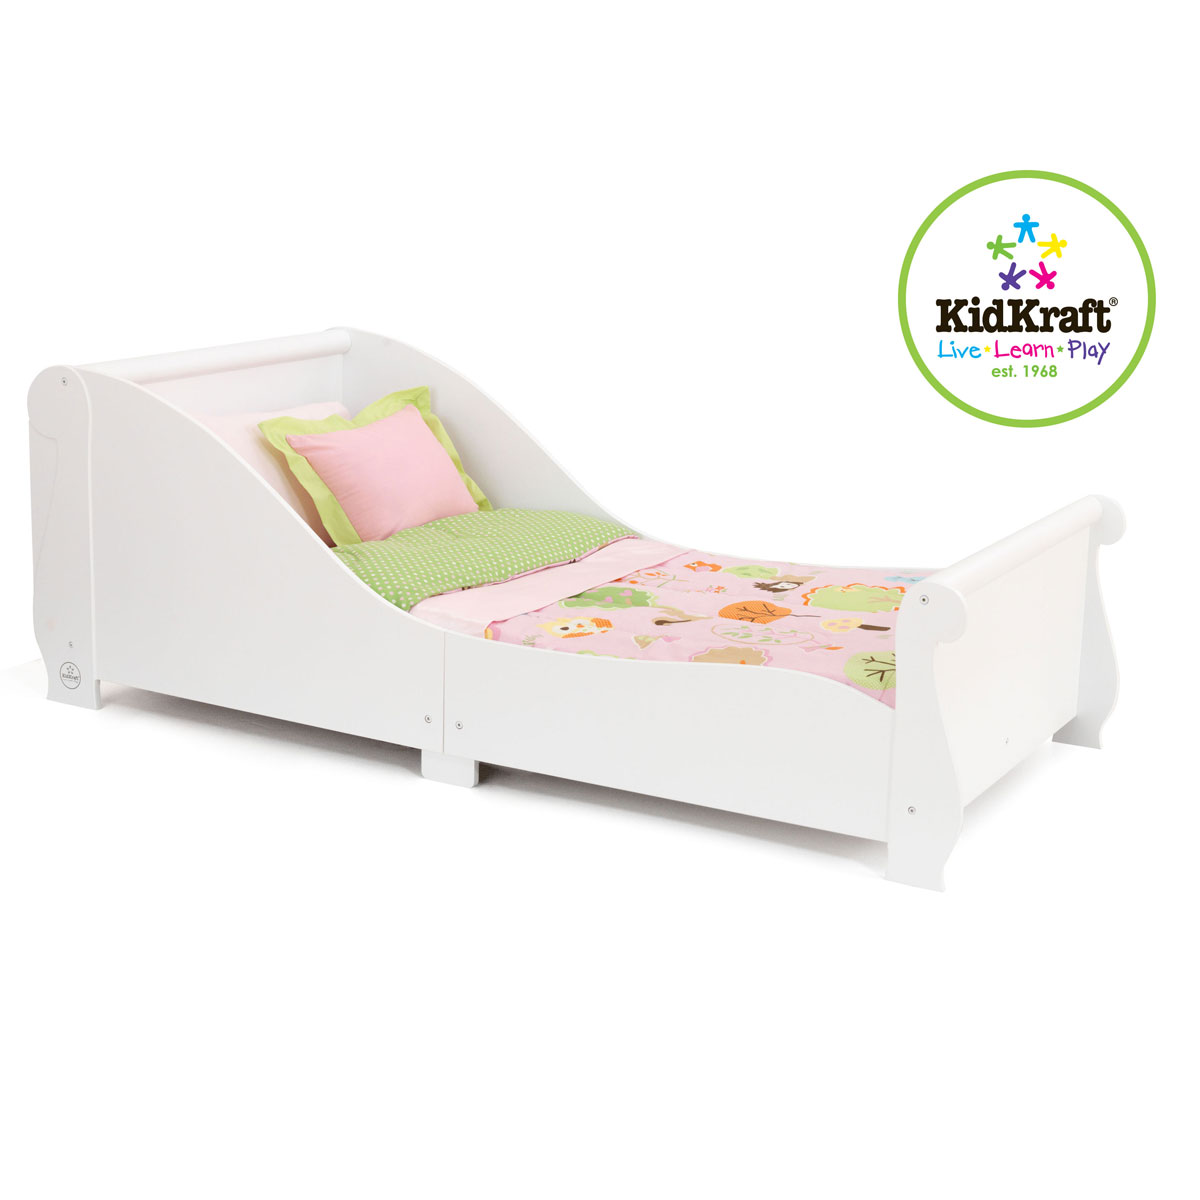 Kidkraft Sleigh Toddler Bed White